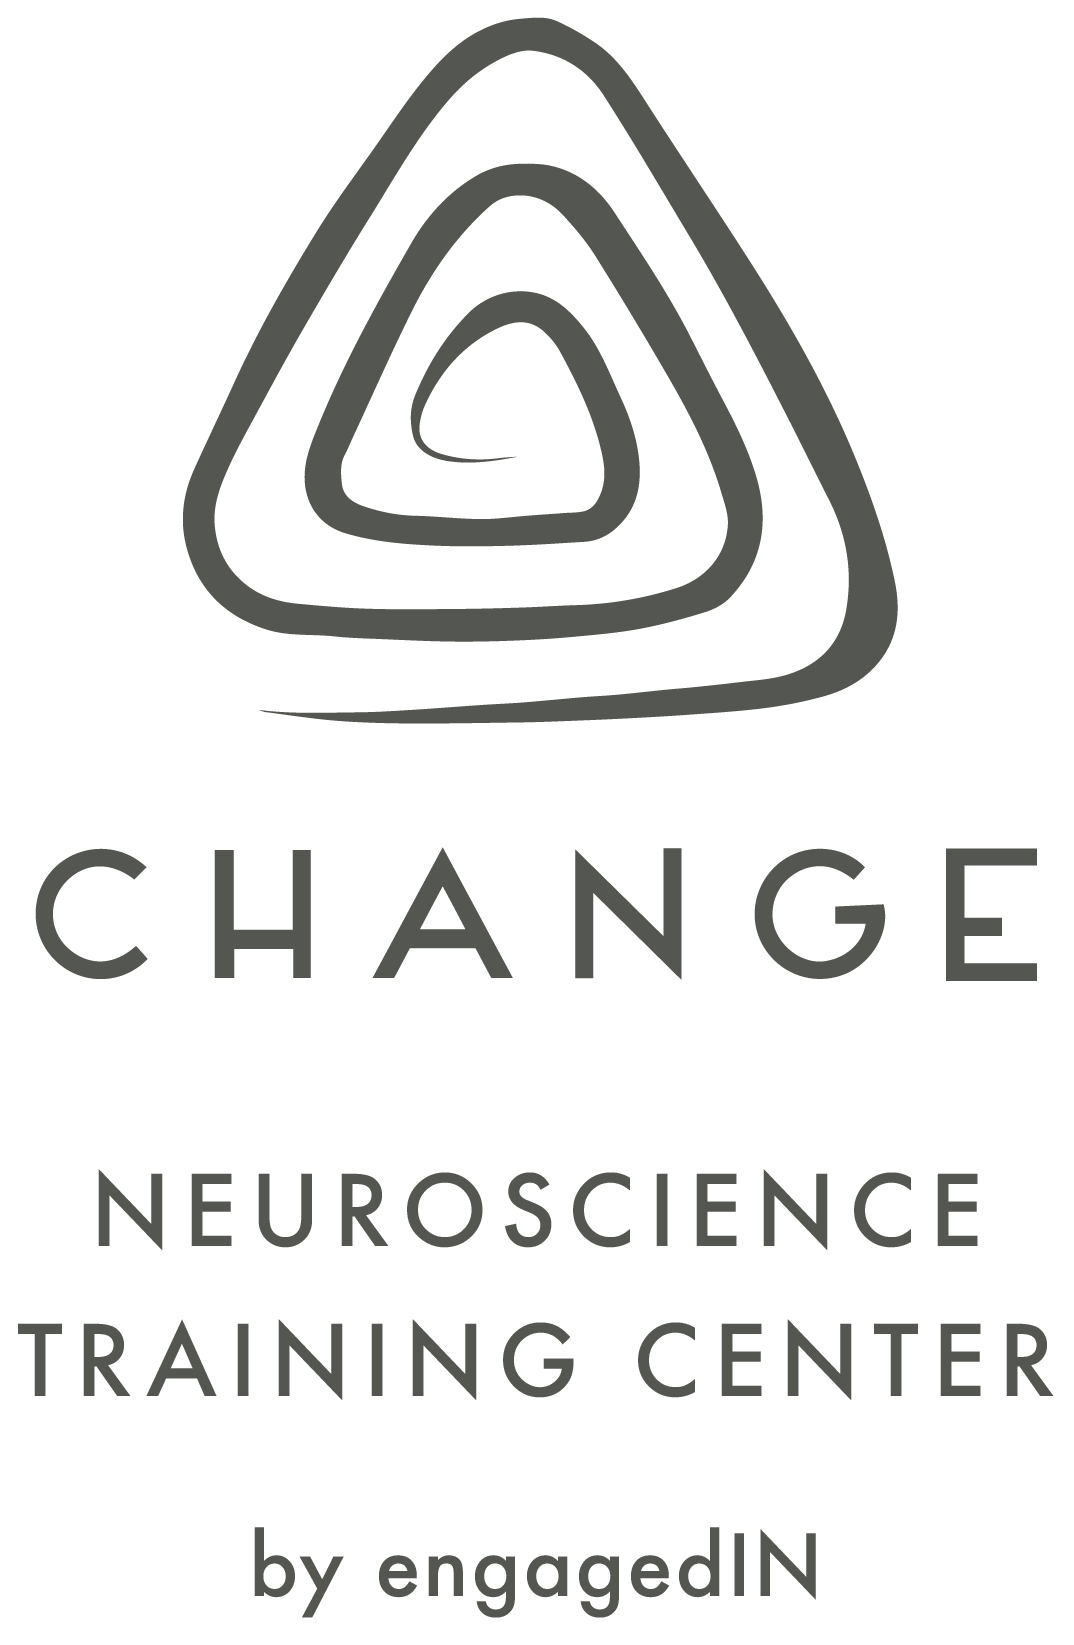 Change Training Center